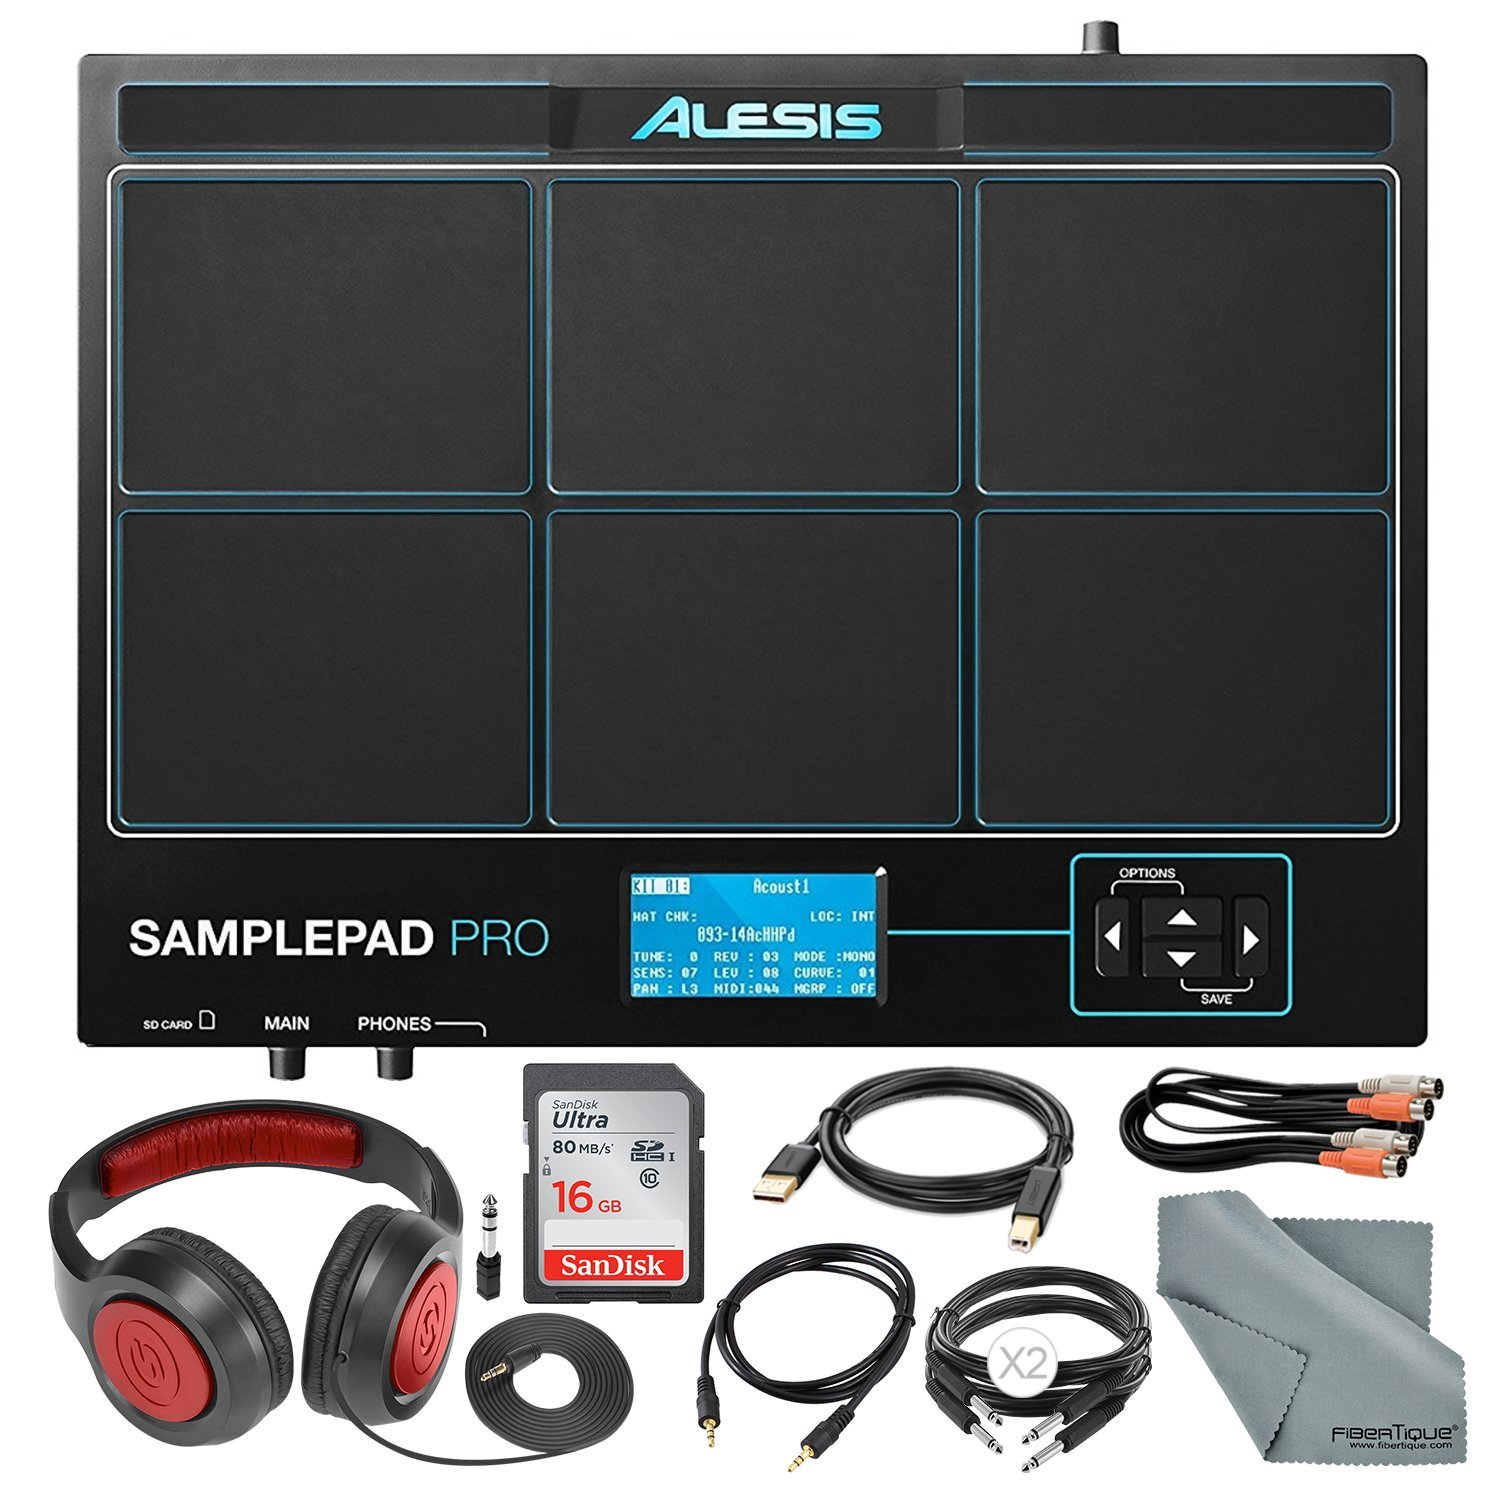 Alesis SamplePad Pro 8-Pad Percussion and Triggering Instrument with Samson Headphones, 16GB Card, and Assorted Cables Accessory Bundle